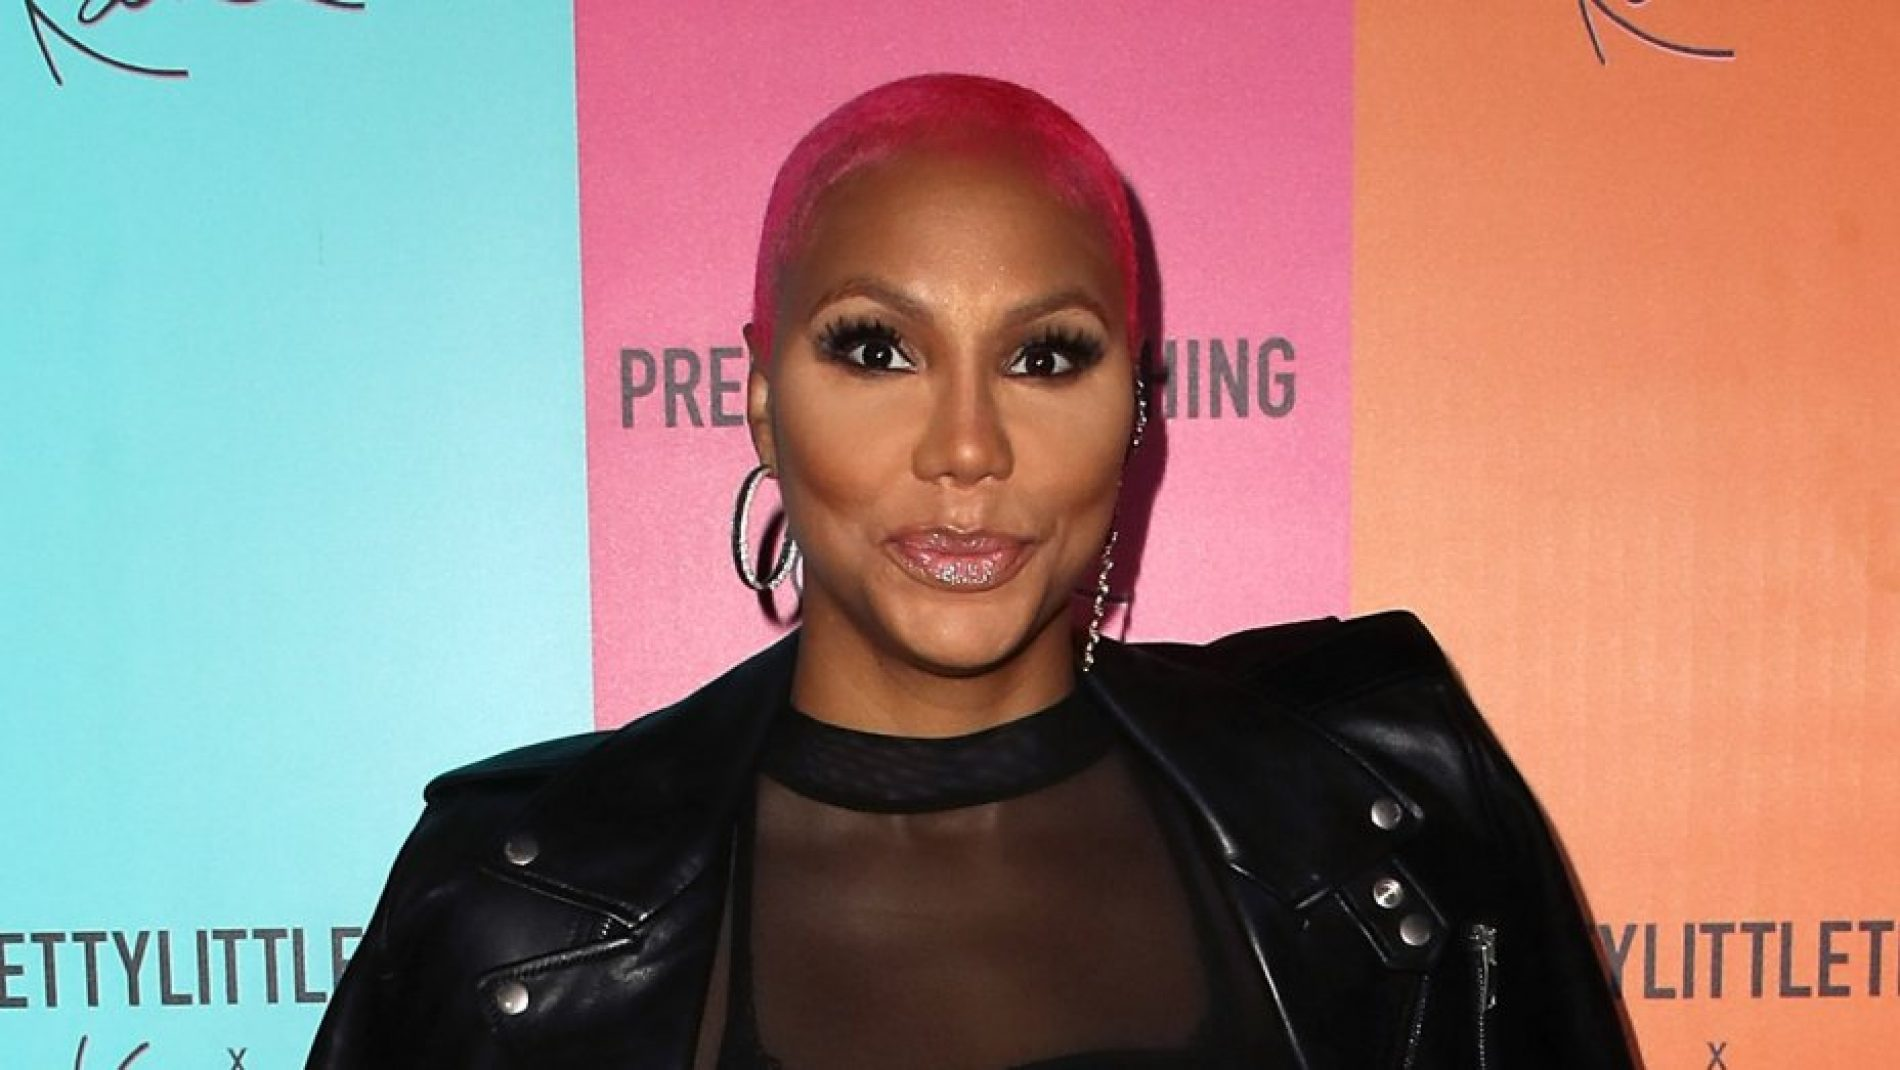 """Tamar Braxton tells Women that if a Man """"Lays With You"""" and """"He Don't Touch You"""", He's Gay"""